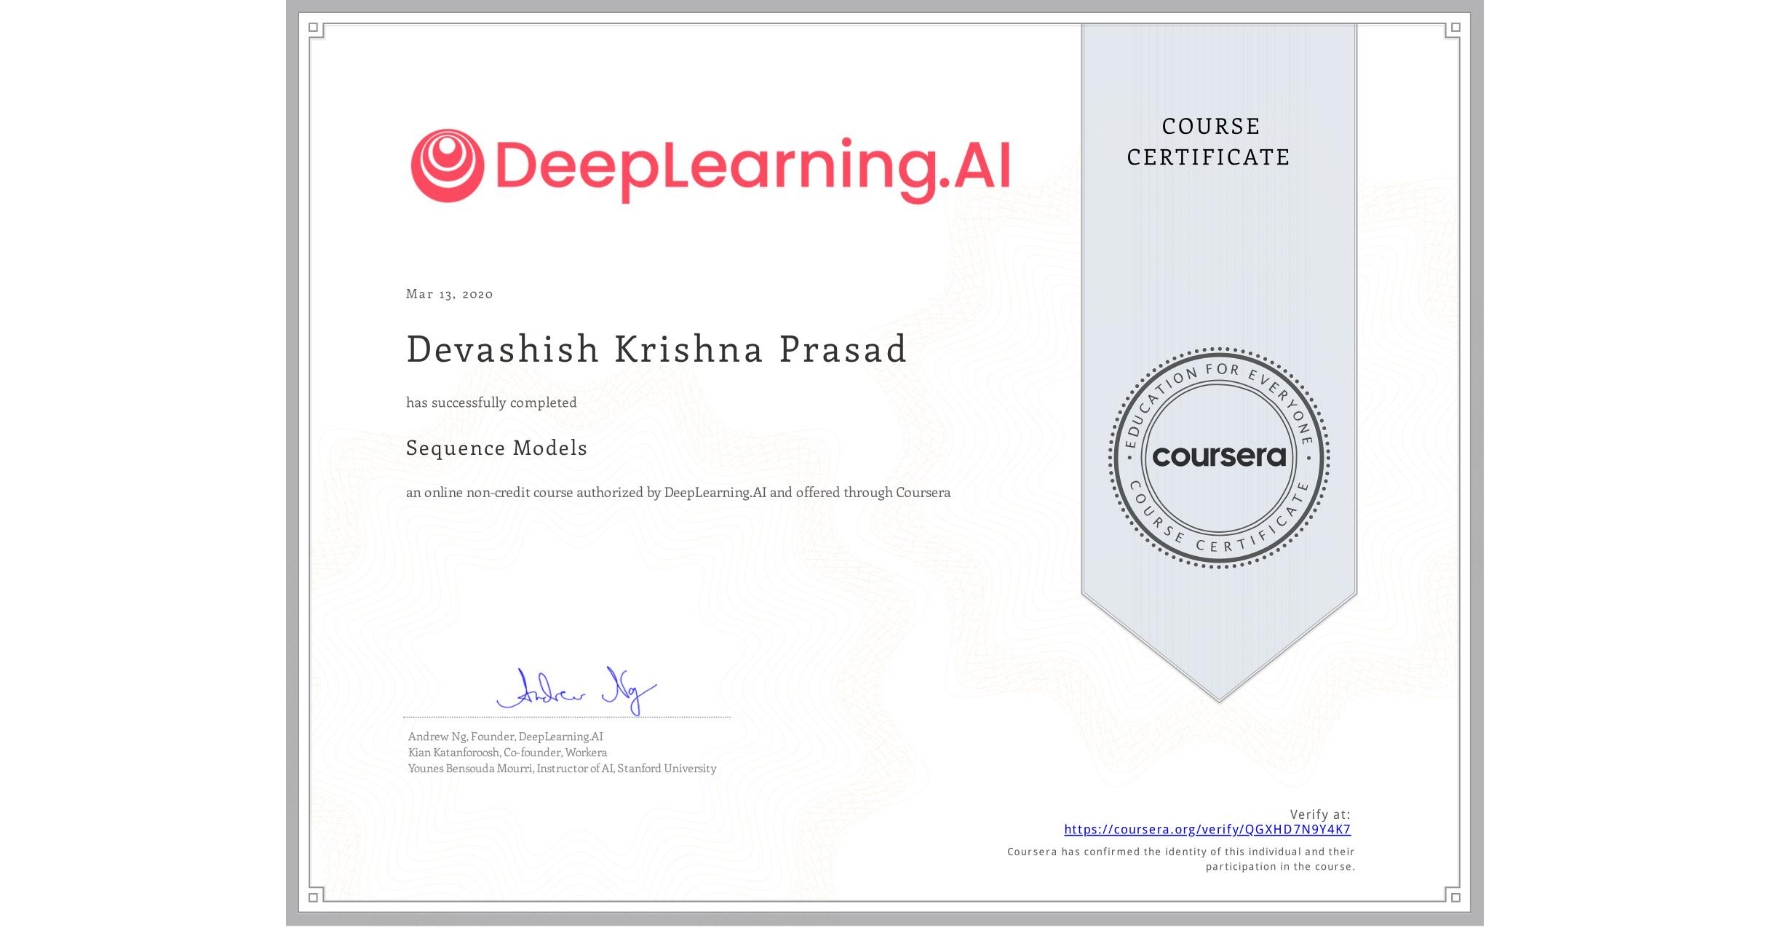 View certificate for Devashish Krishna Prasad, Sequence Models, an online non-credit course authorized by DeepLearning.AI and offered through Coursera